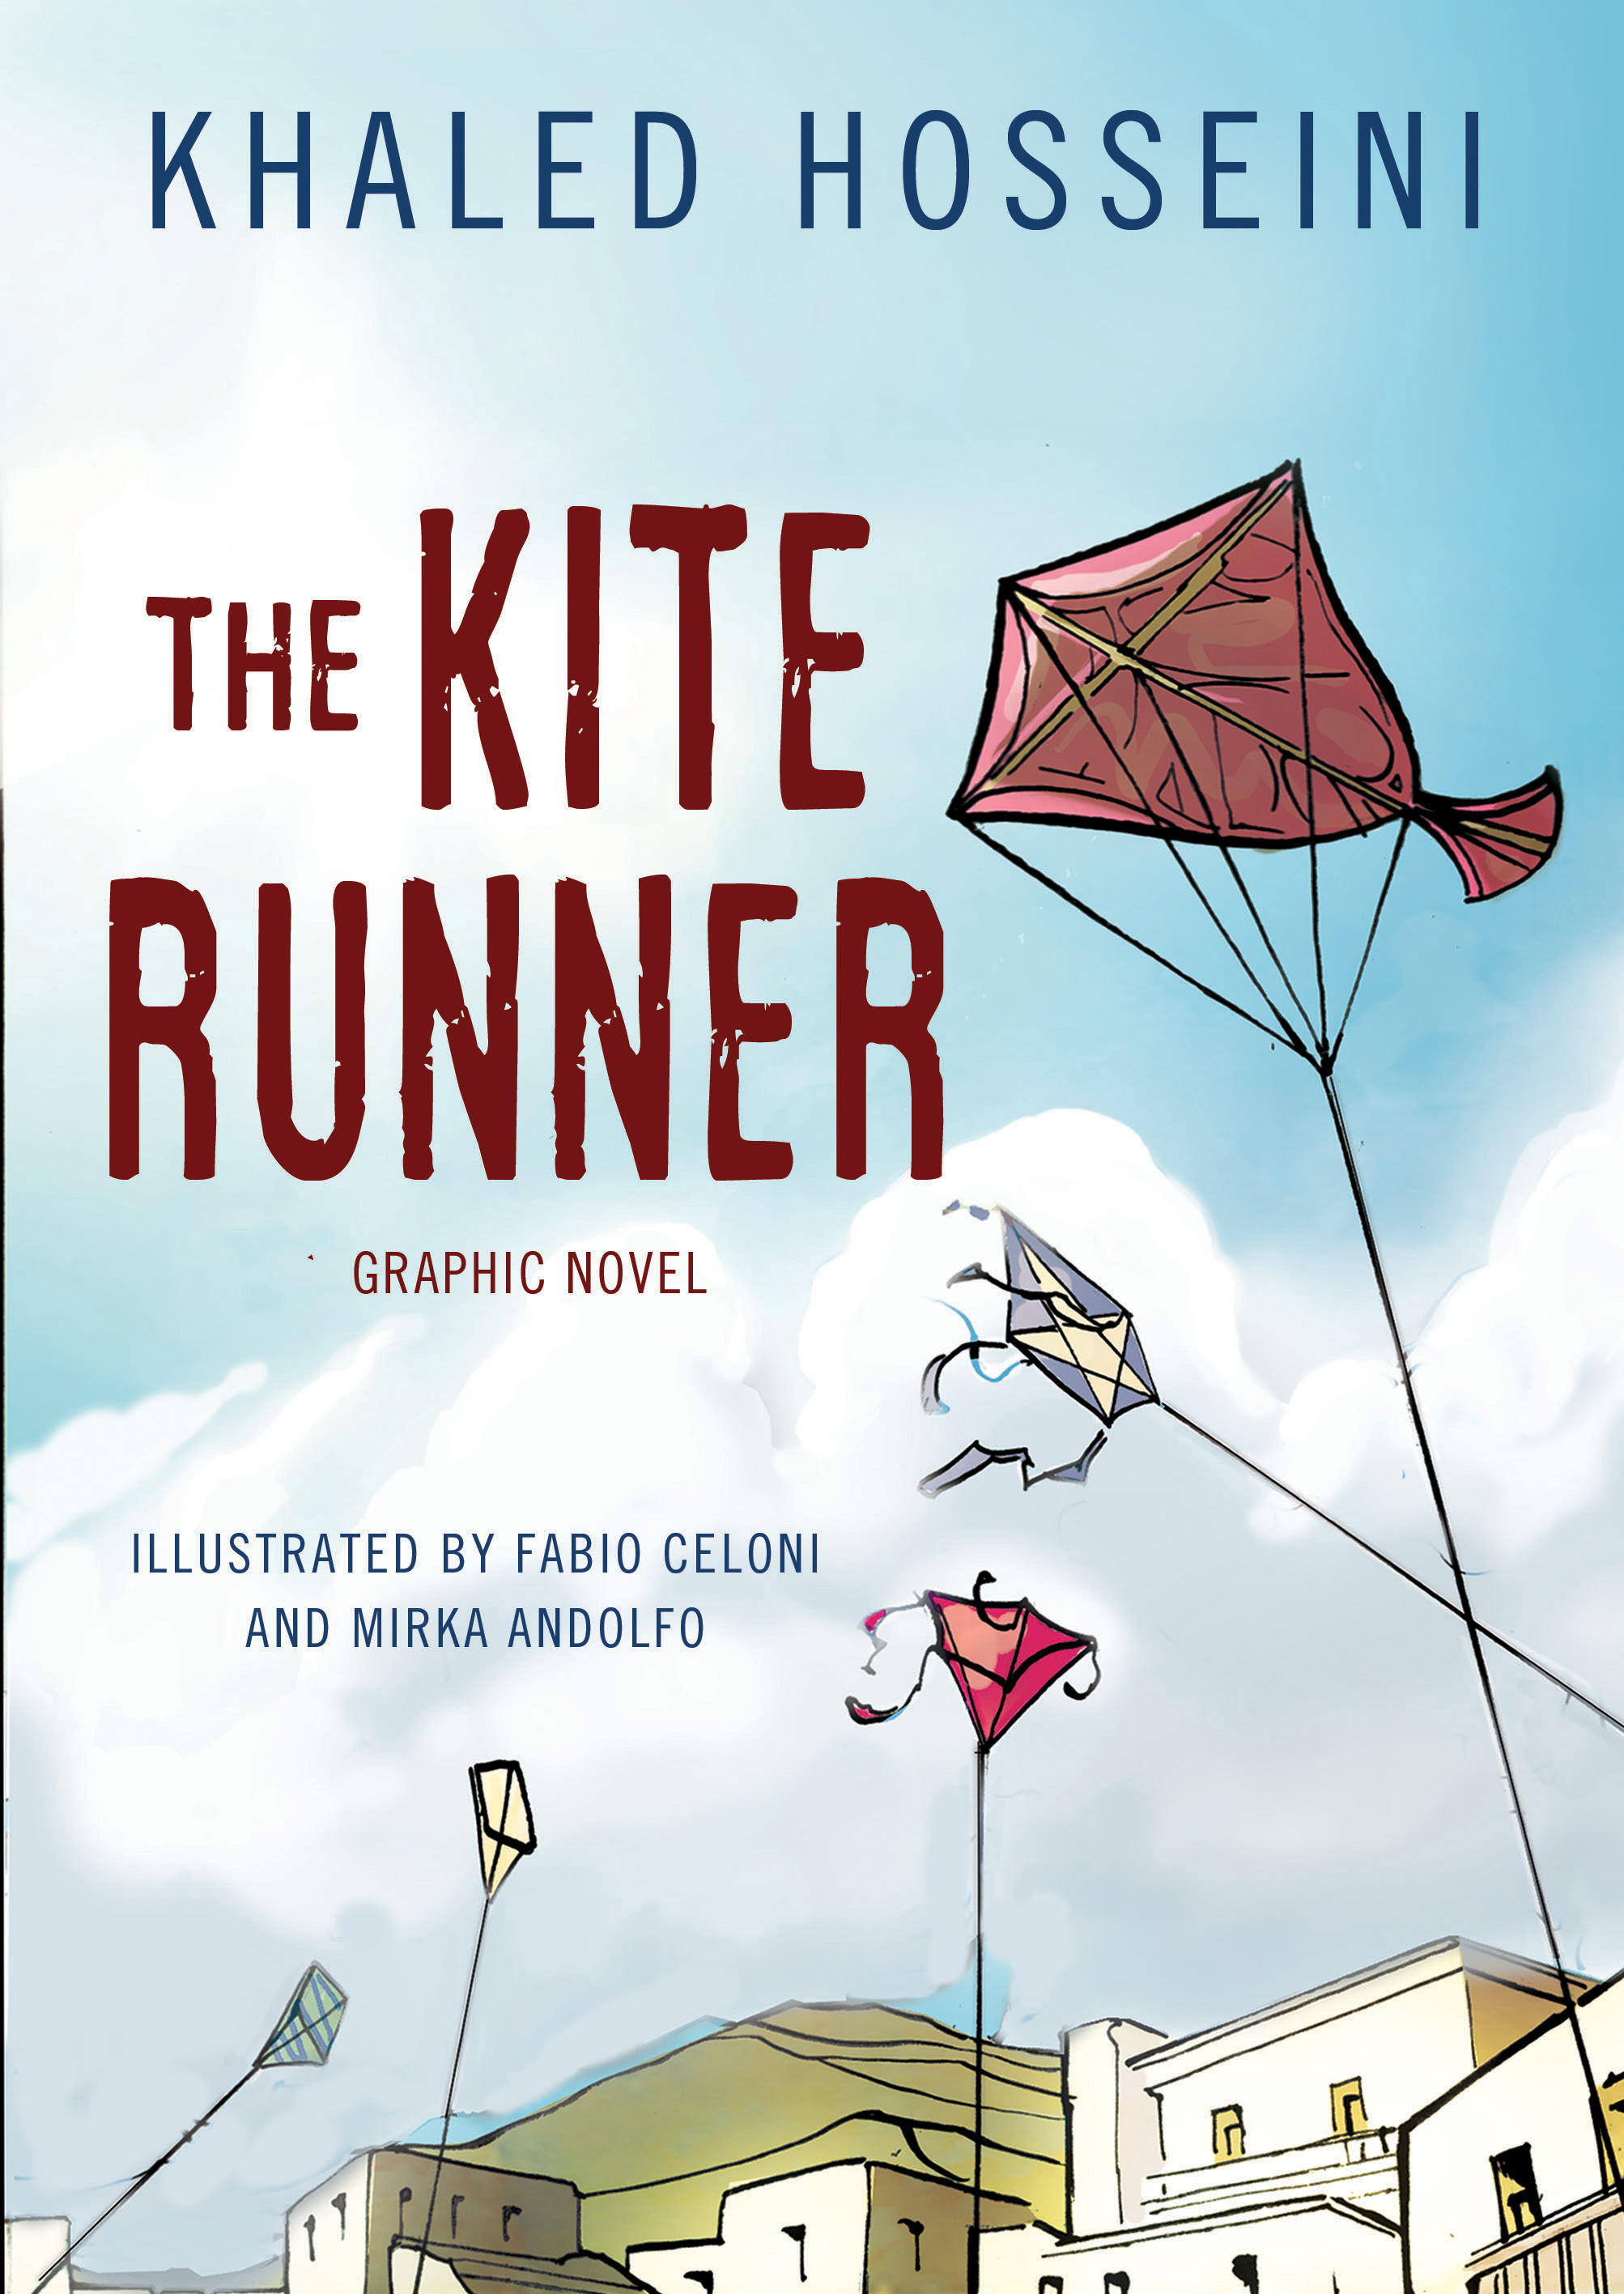 the kite runner graphic novel khaled hosseini fabio celoni cover